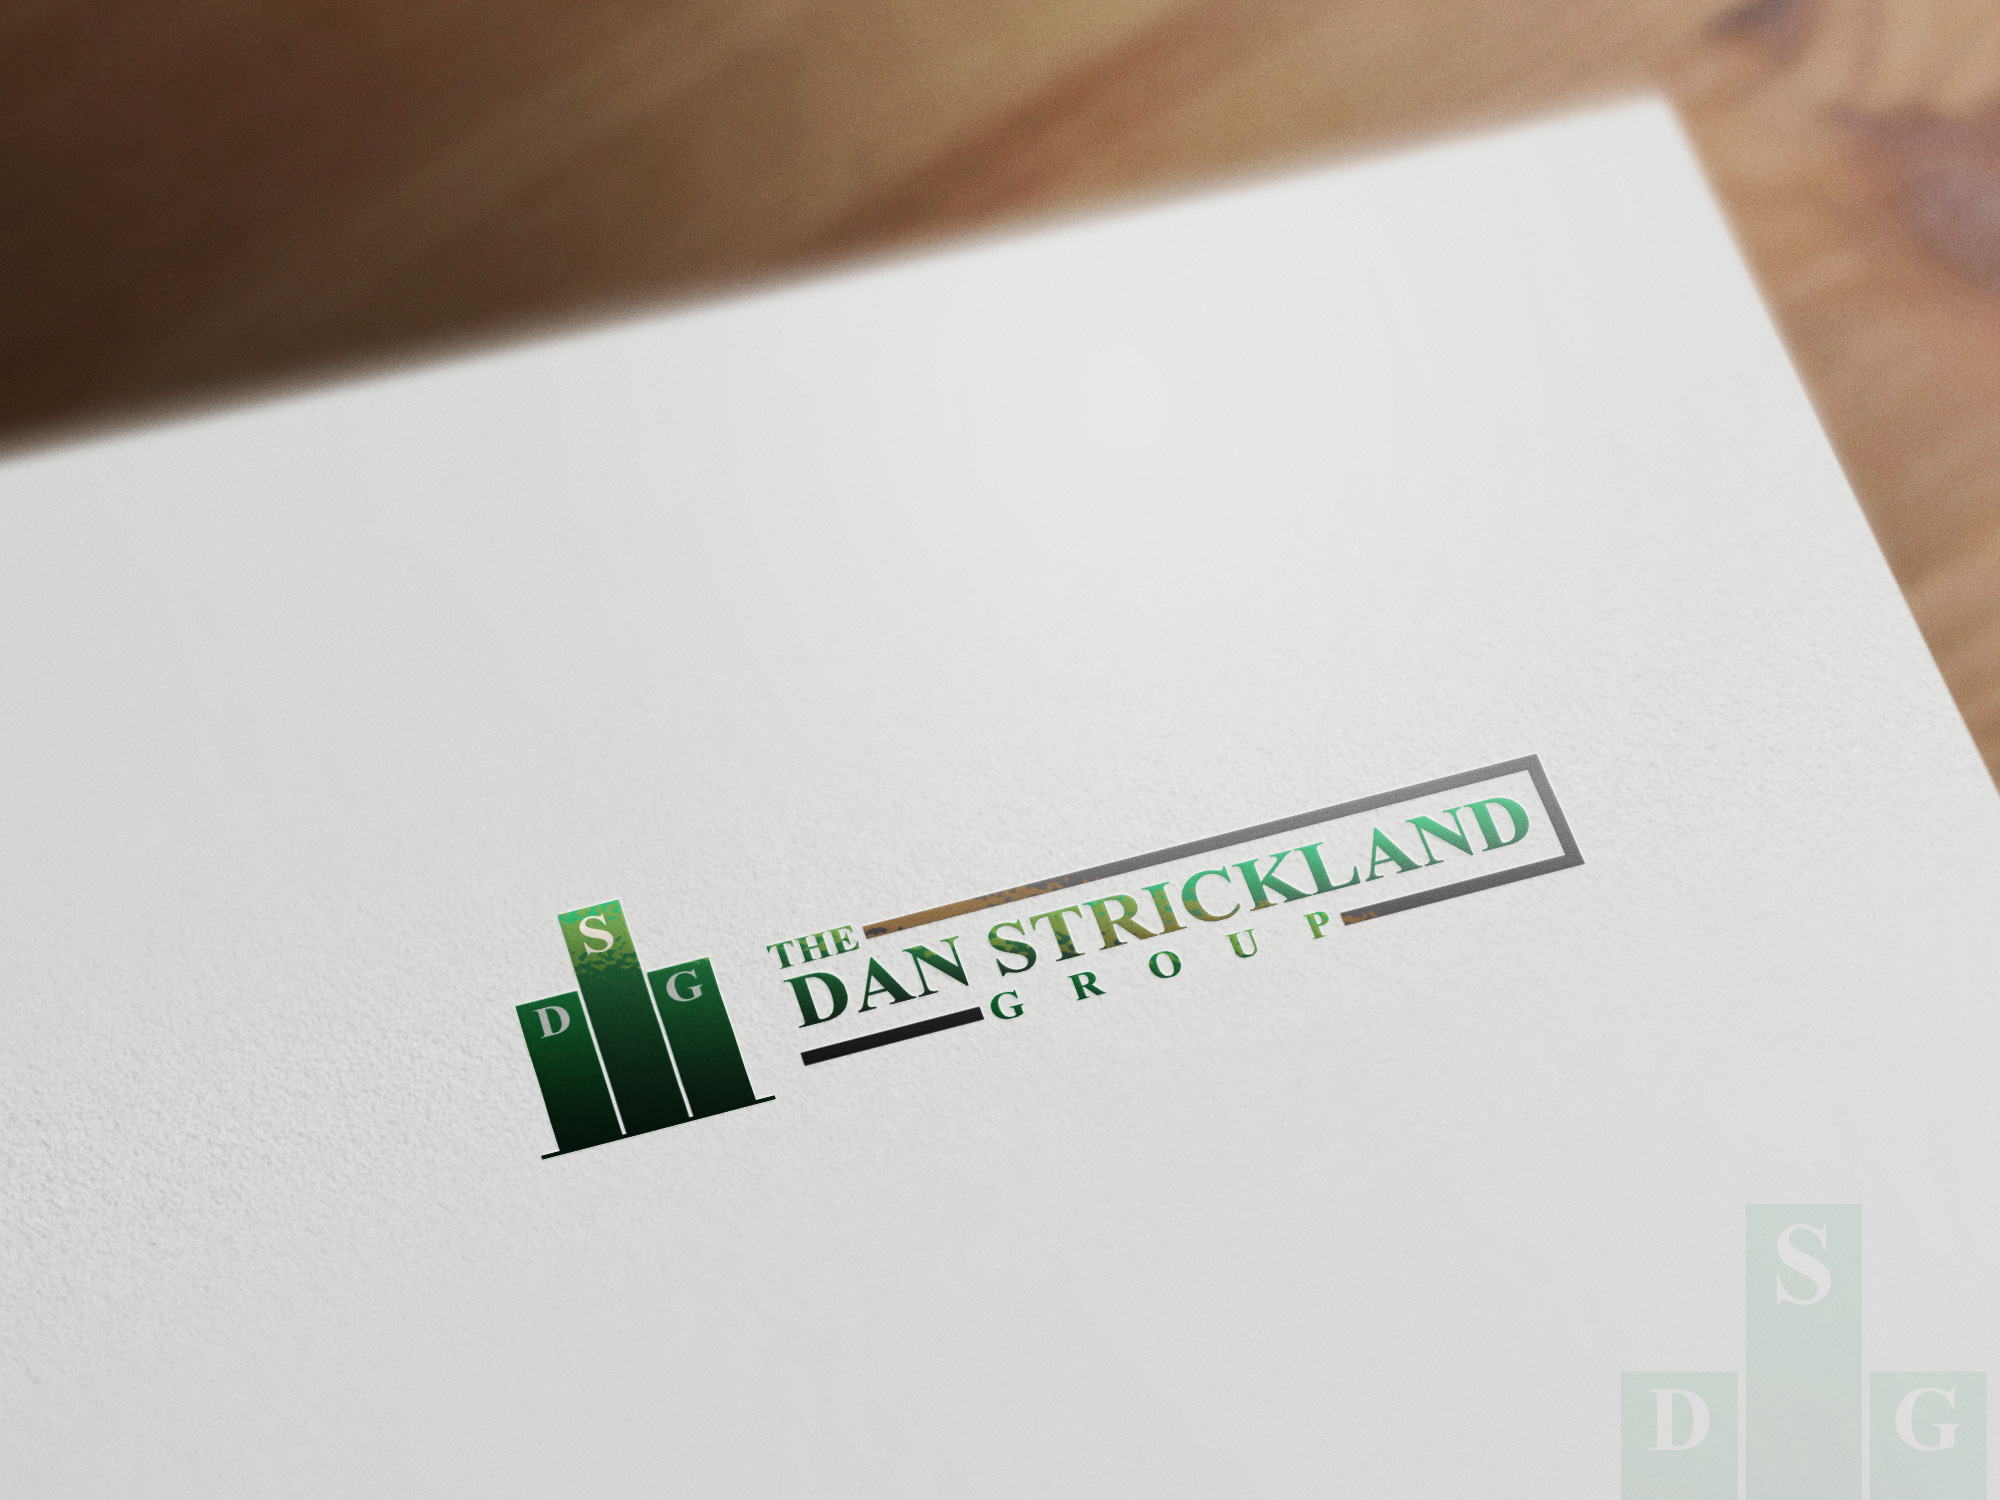 Logo Design by olii - Entry No. 137 in the Logo Design Contest Creative Logo Design for The Dan Strickland Group.